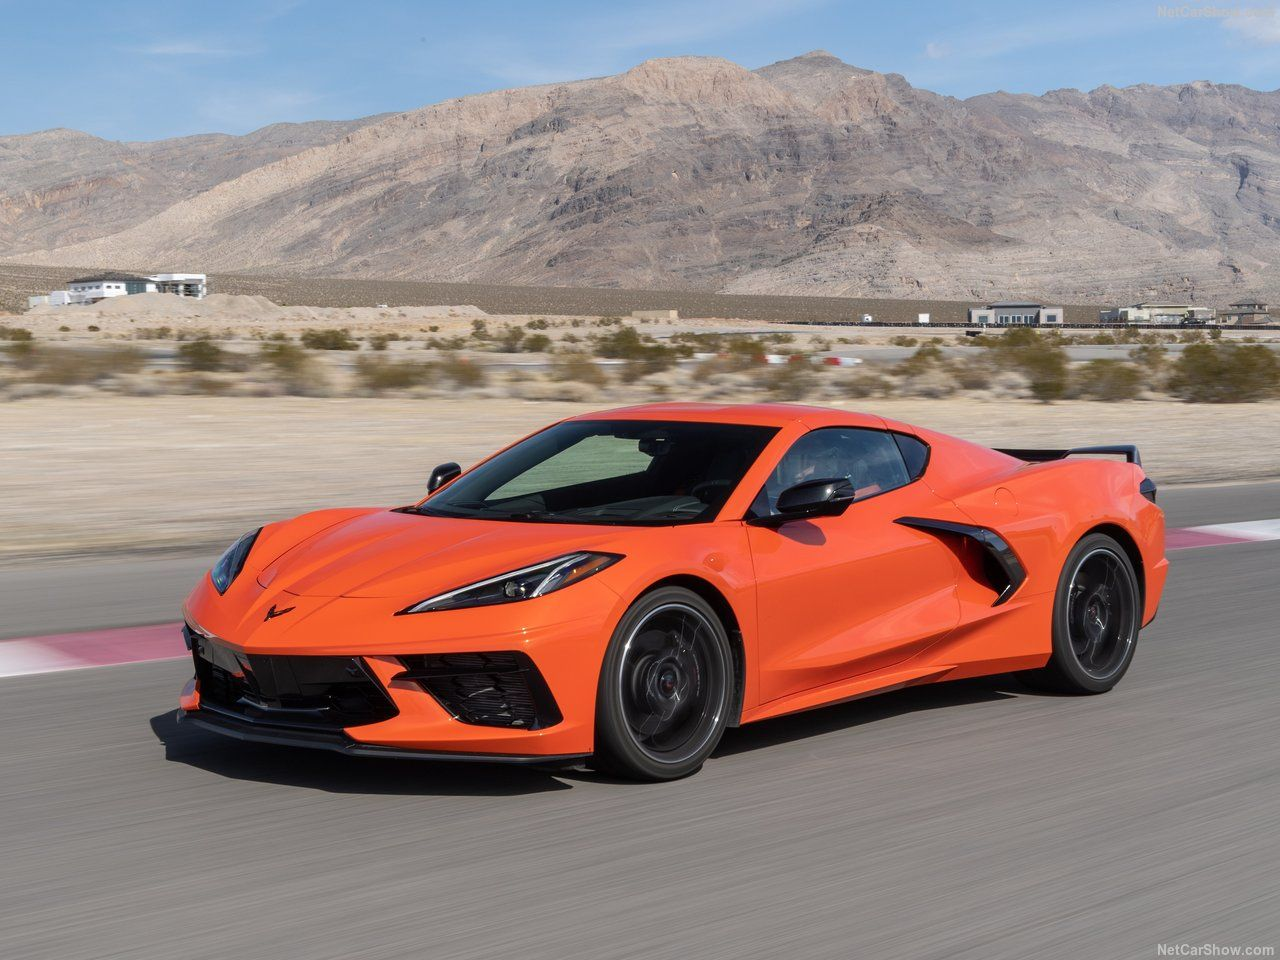 If You Want to Buy an Orange C8 Corvette, 2021 Is Your Last Chance